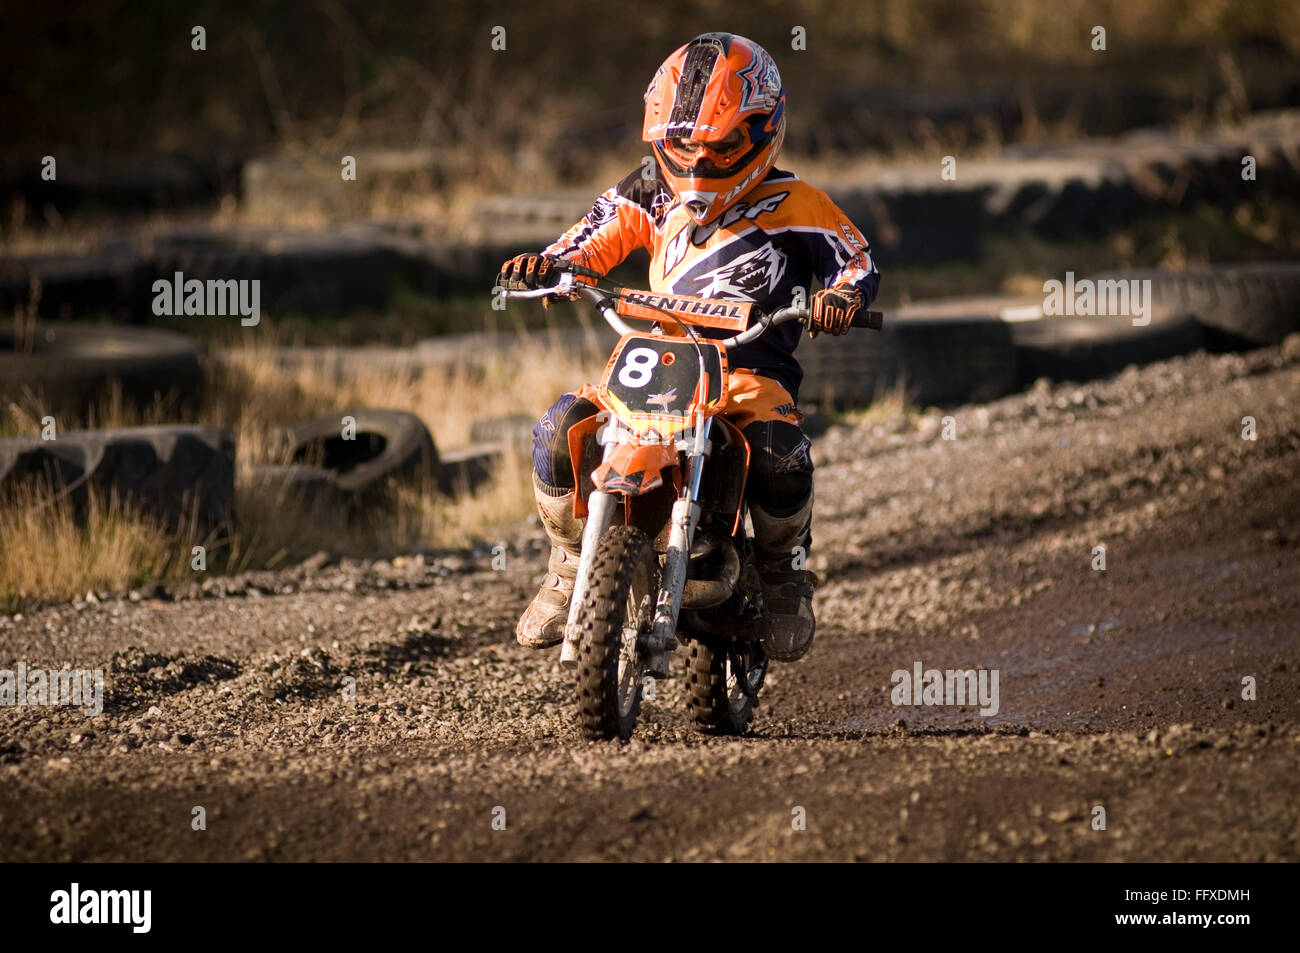 Junior Moto Cross X Child Rider Riding A Motor Motorcross Bike Bikes Off Road Scrambler Scrambling Cycles Motorbike